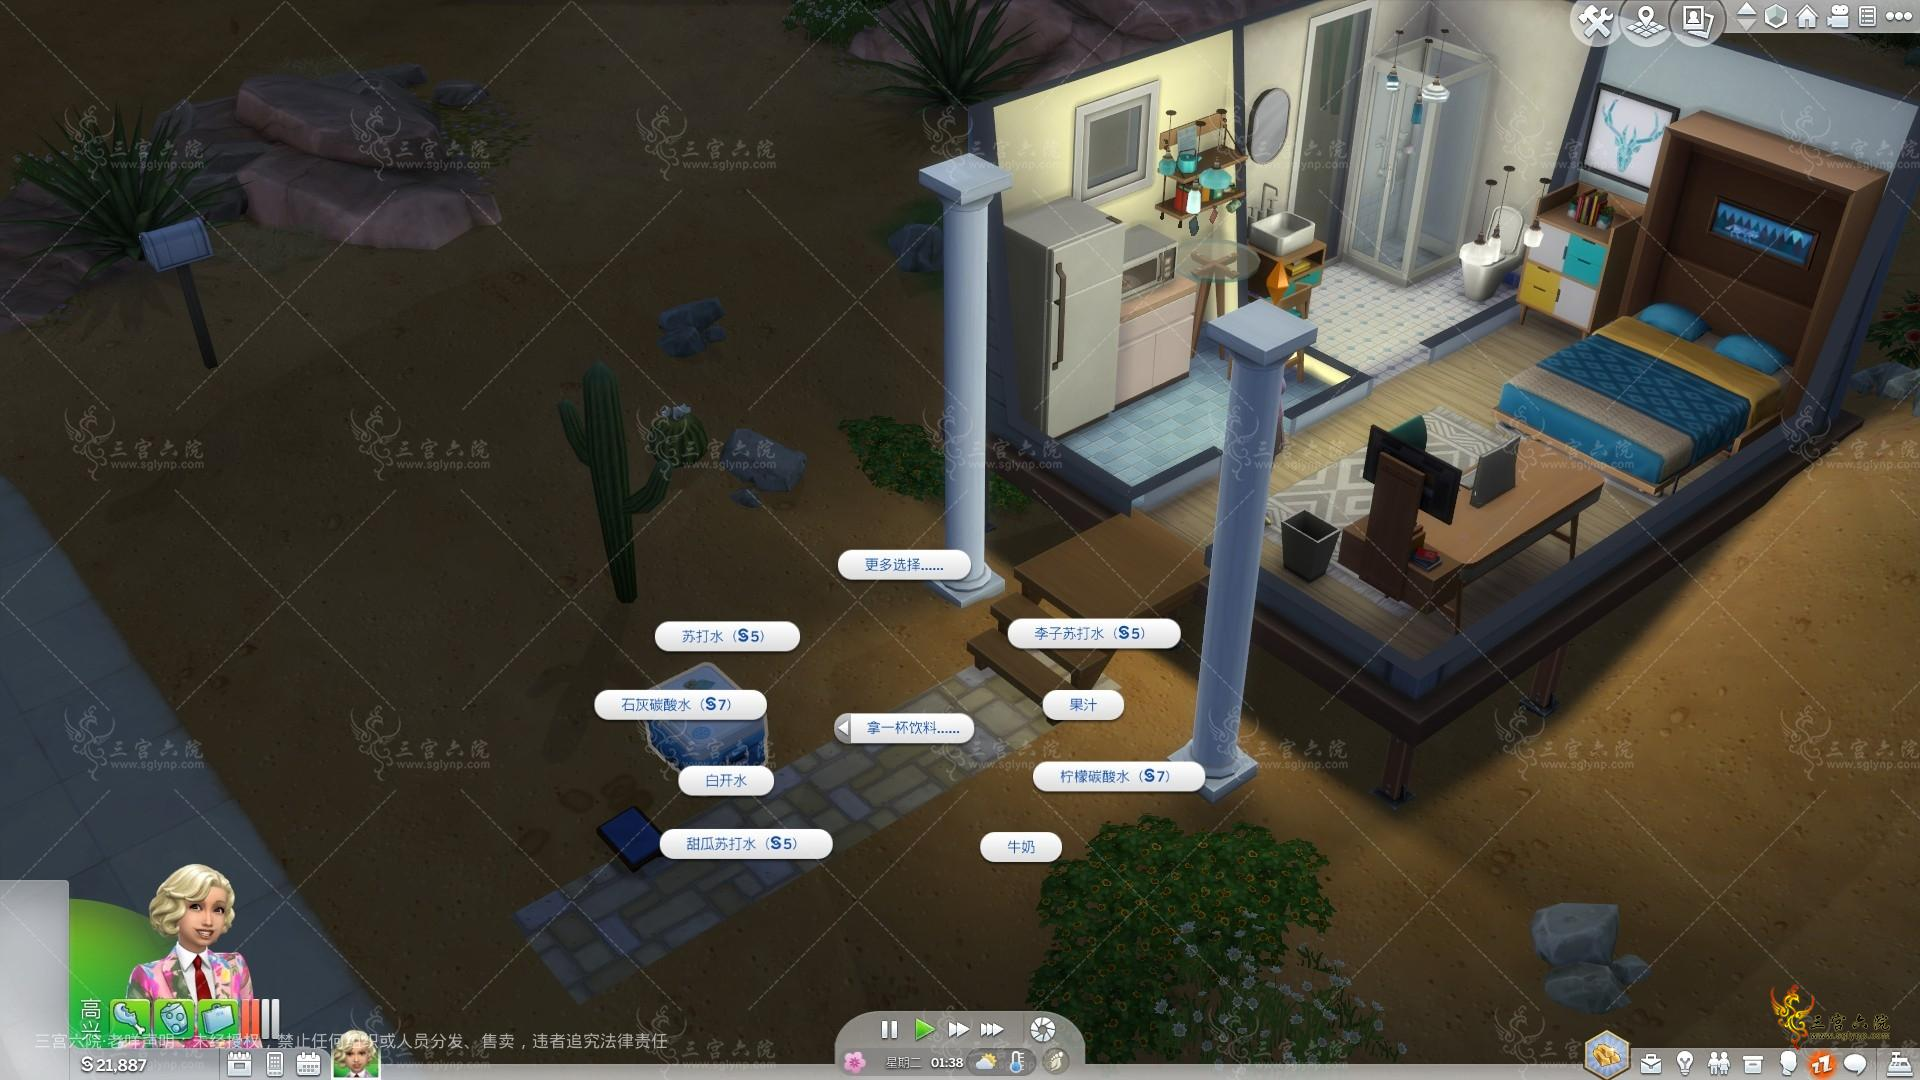 The Sims 4 2021_10_6 22_48_50.png